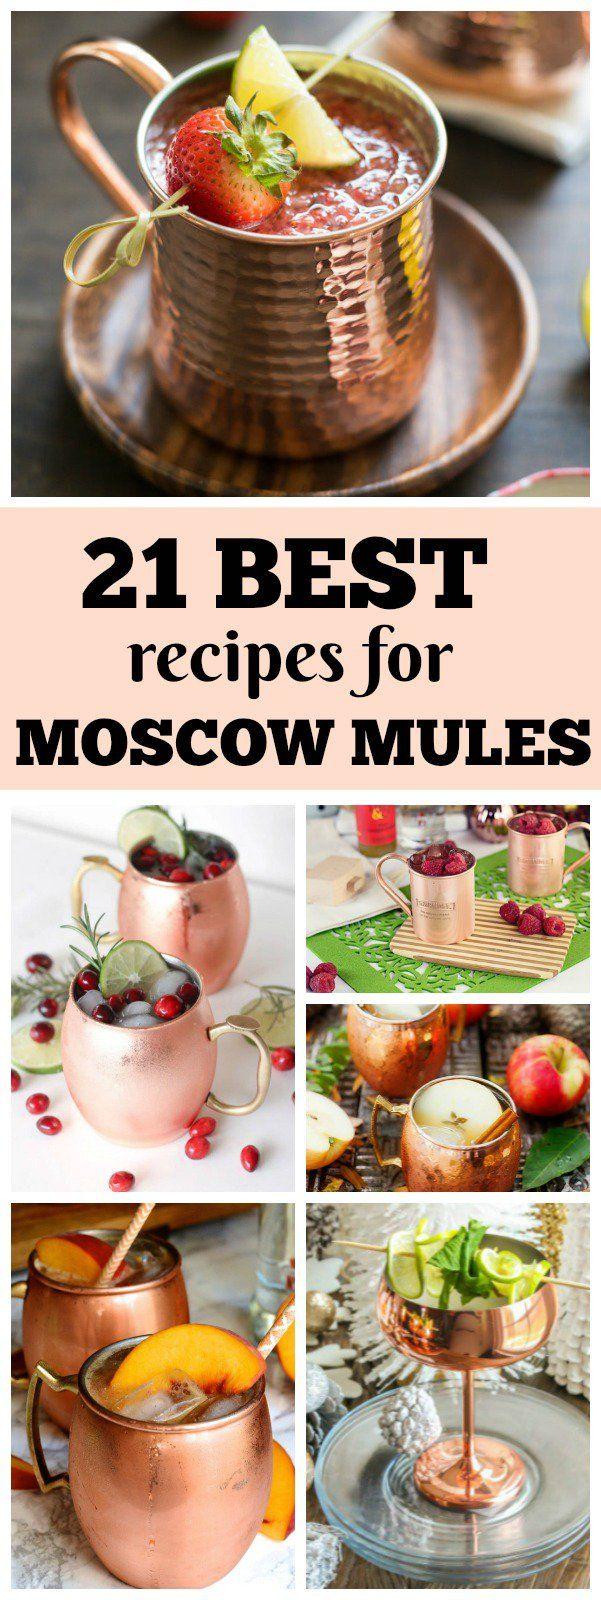 Click through the slideshow gallery above to view: 21 BEST RECIPES FOR MOSCOW MULES. There is going to be something in this collection that you will love!A Moscow mule is a cocktail, and the classic version is made with vodka, ginger beer, and lime juice, and it's garnished with a slice or wedge of lime. [...]